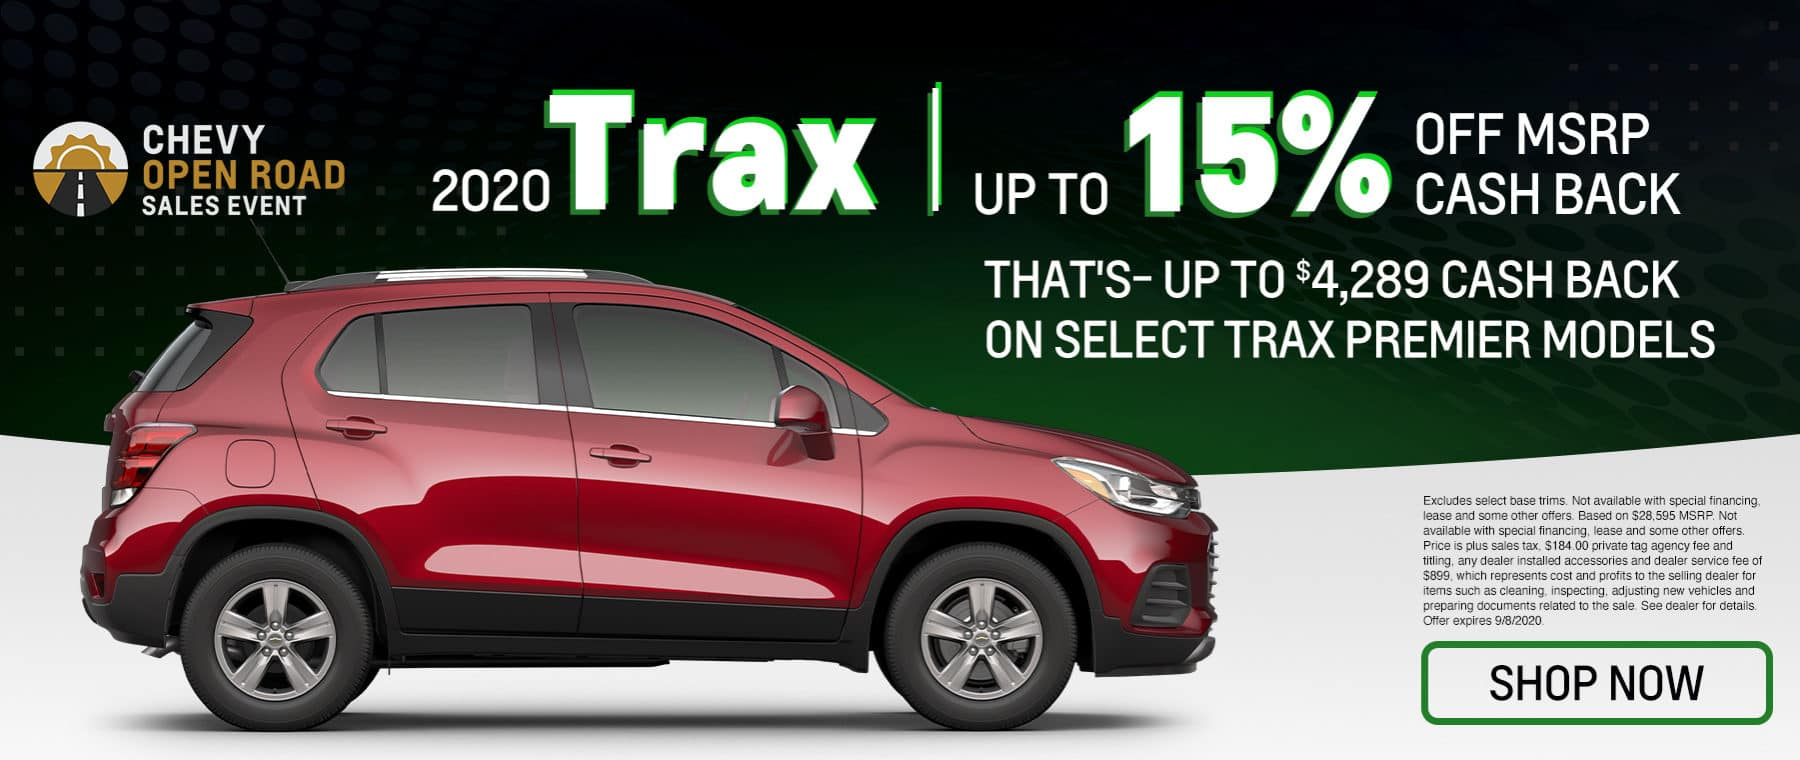 Chevy Open Road Sales Event | 2020 Trax | Up To 15% Off MSRP Cash Back That's Up To $4,289 Cash Back On Select Trax Premier Models